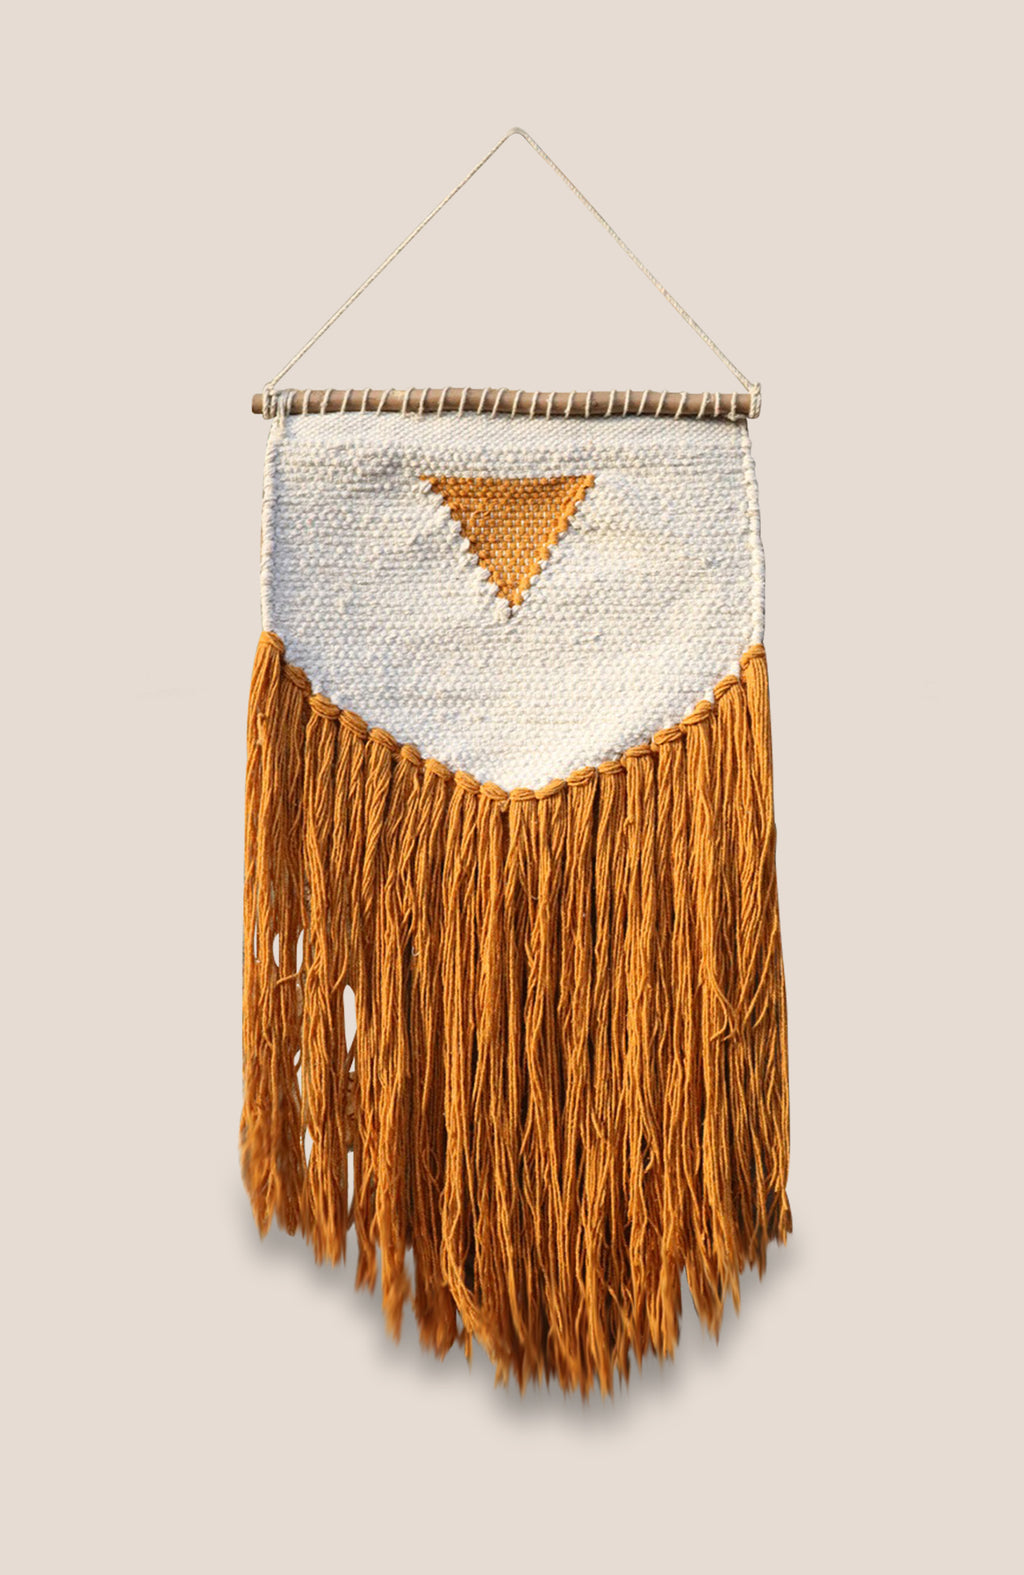 Macrame Wall Hanging Leo - Home Decor | Shop Baskets, Ceramics, Pillows, Rugs & Wall Hangs online